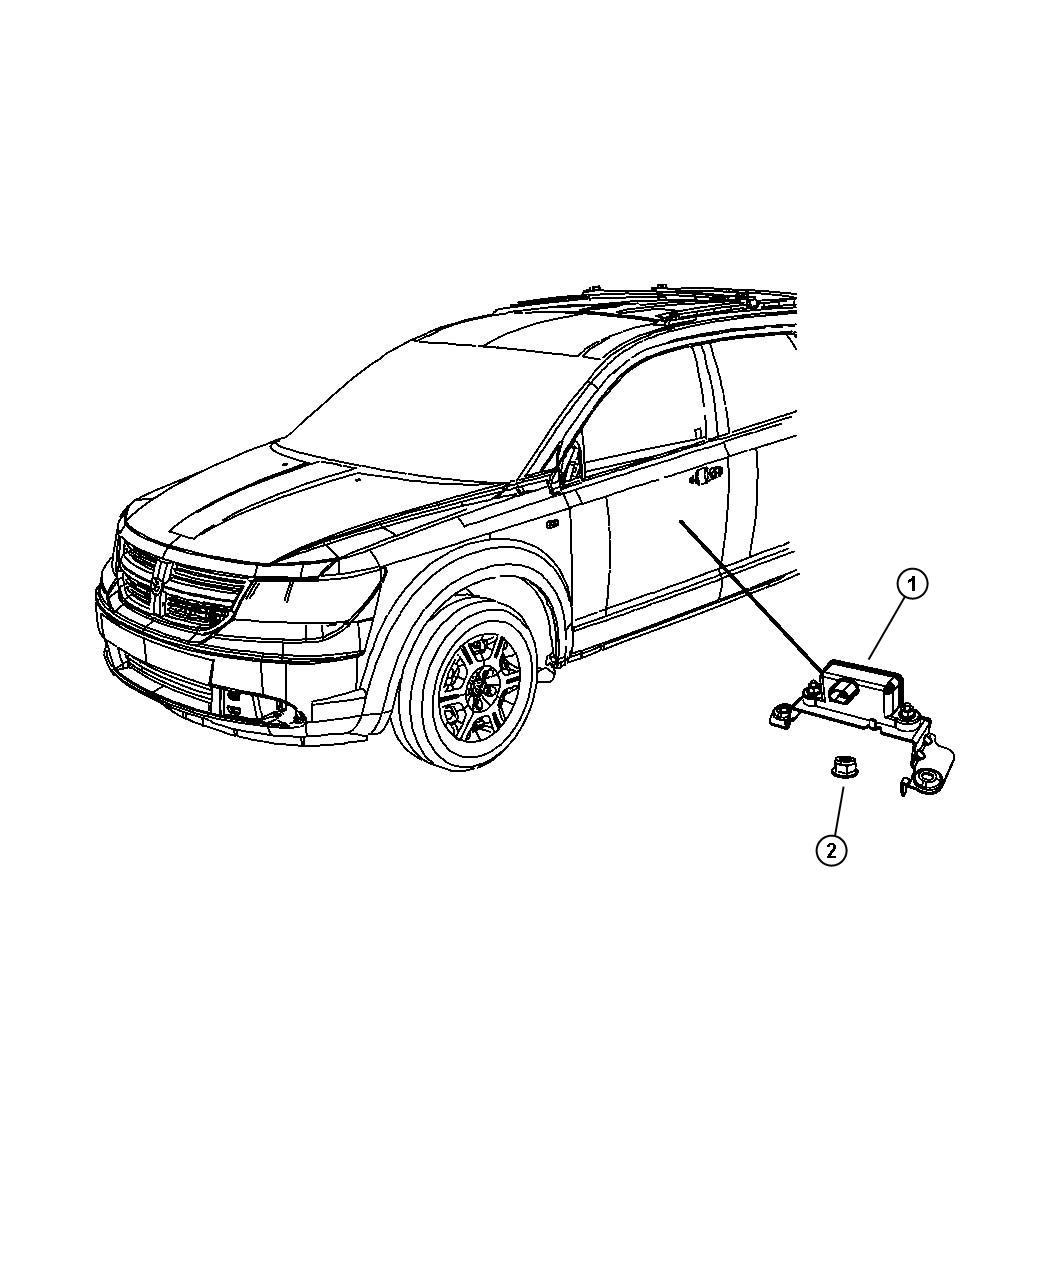 Dodge Diagrams : 2009 Dodge Journey Thermostat Location